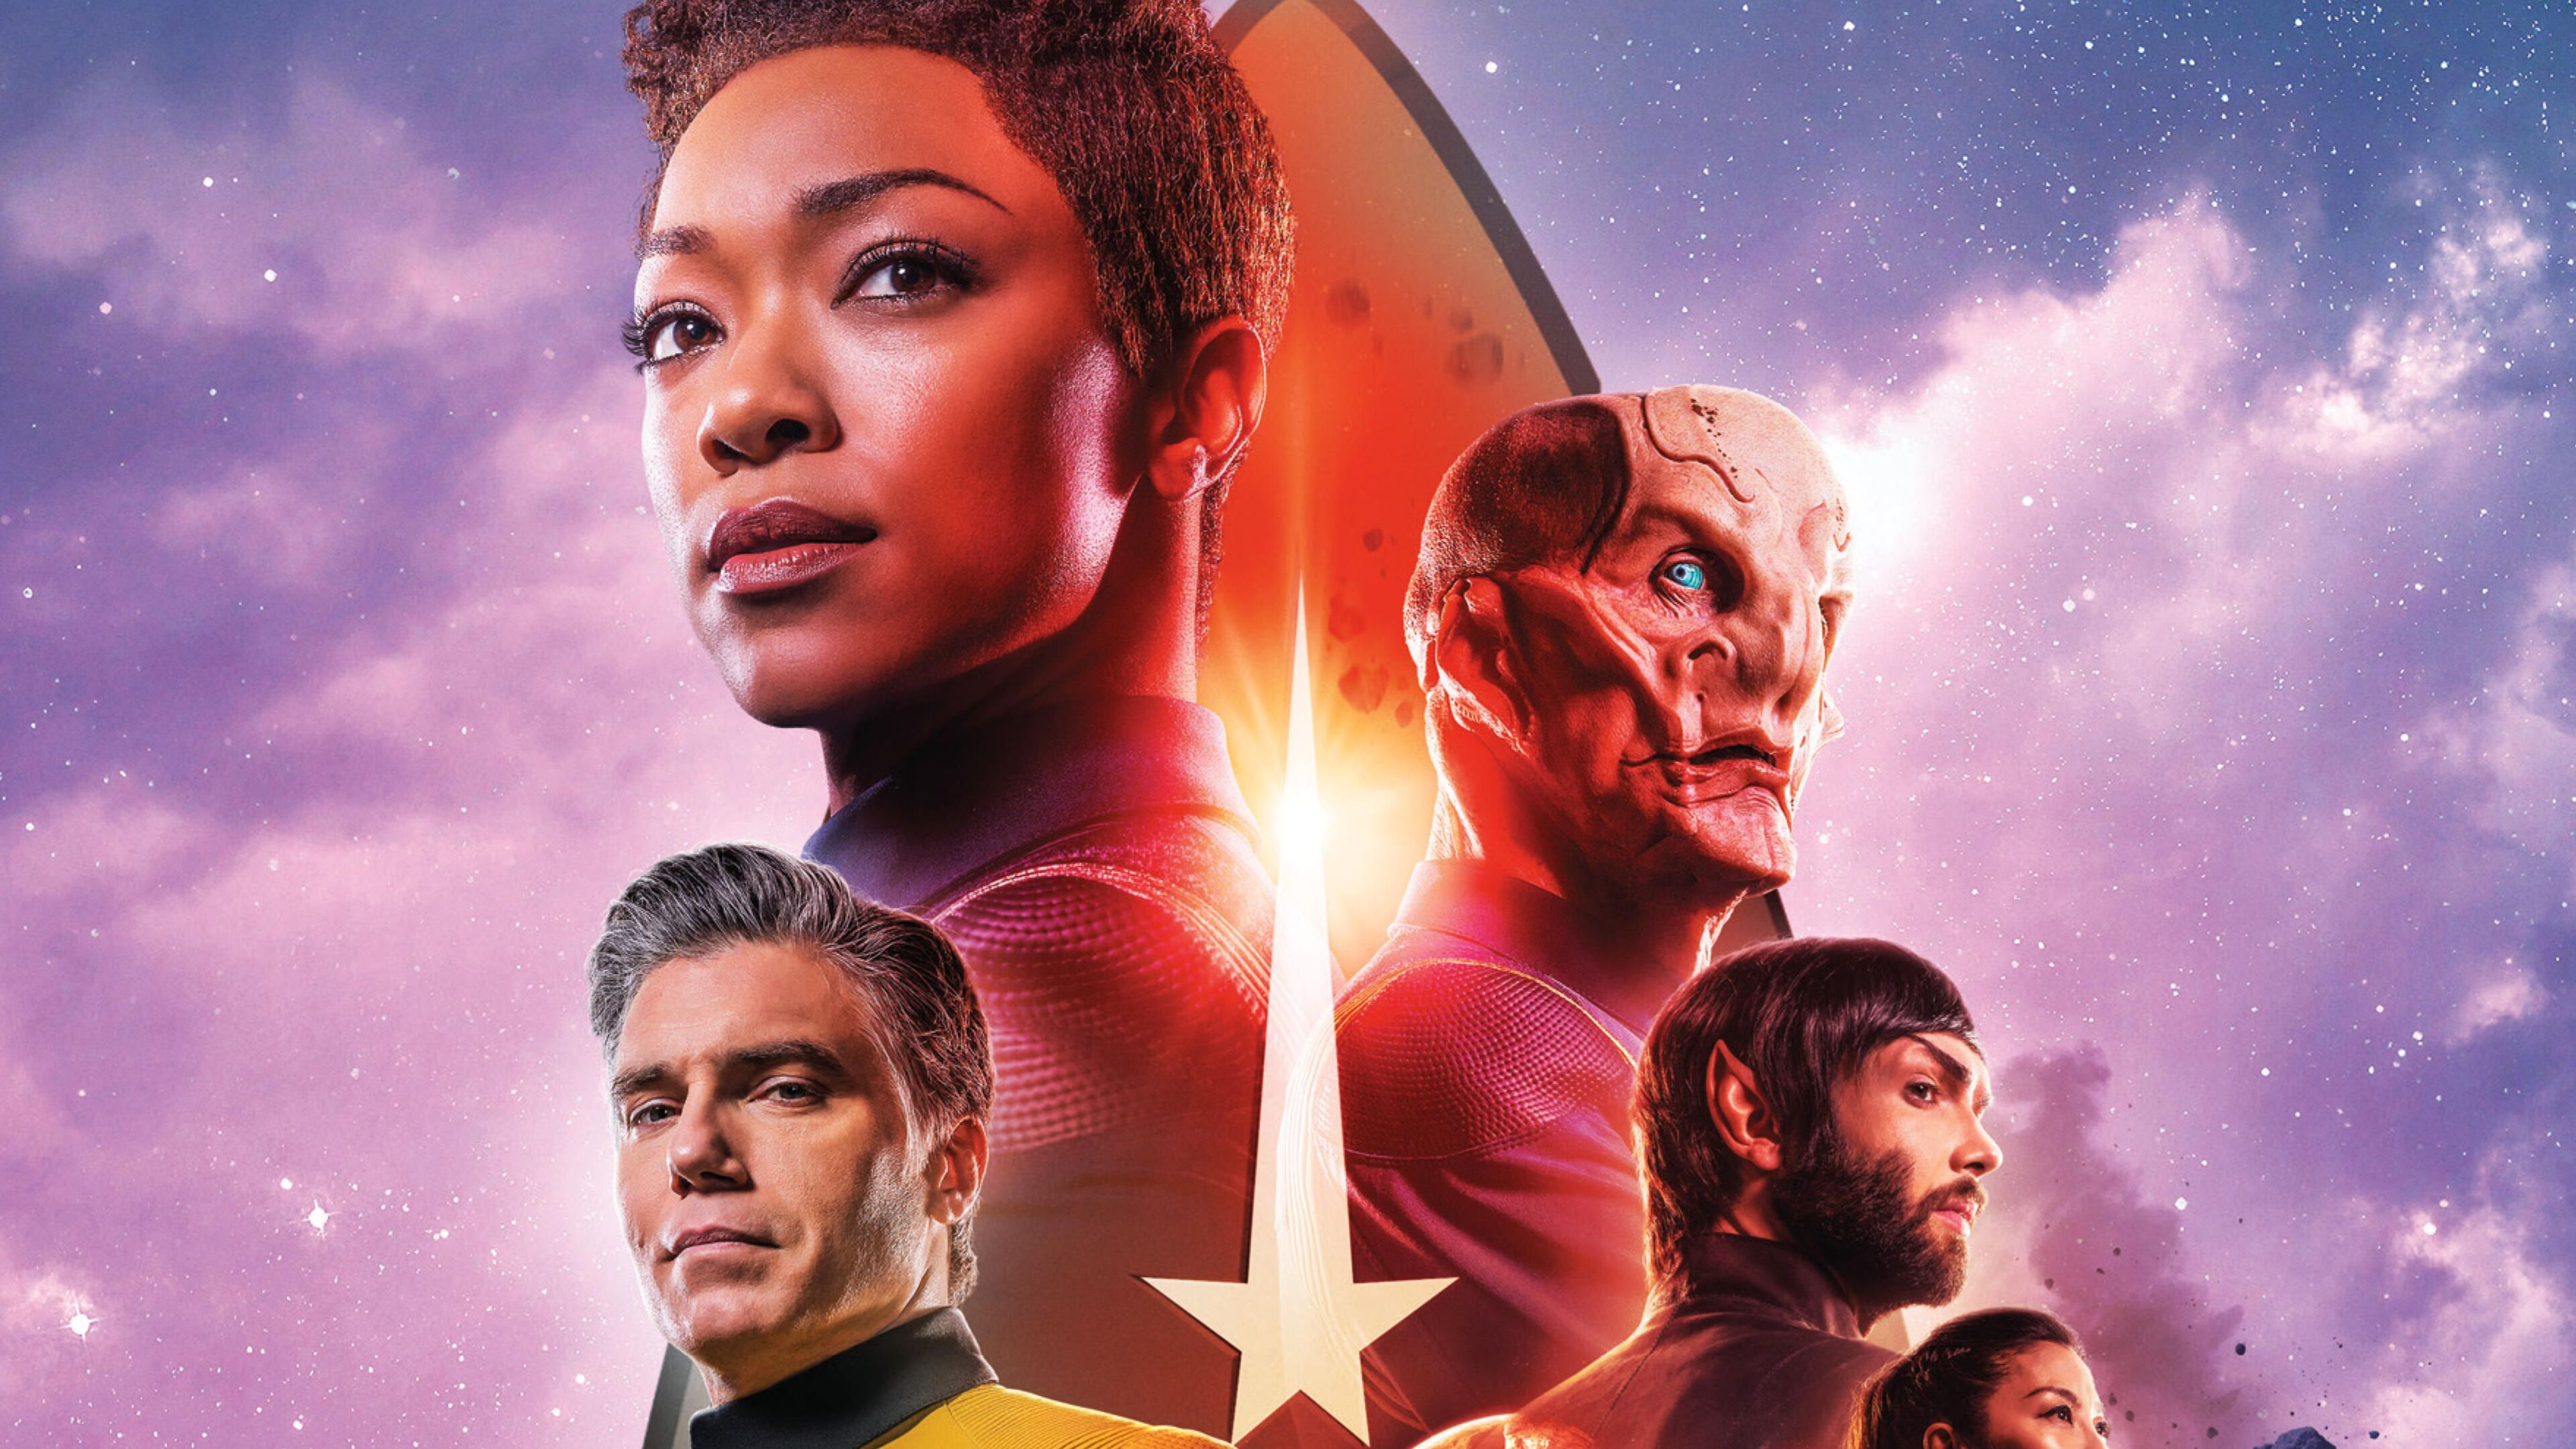 3840x2160 Star Trek Discovery Season 2 Poster 4k Hd 4k